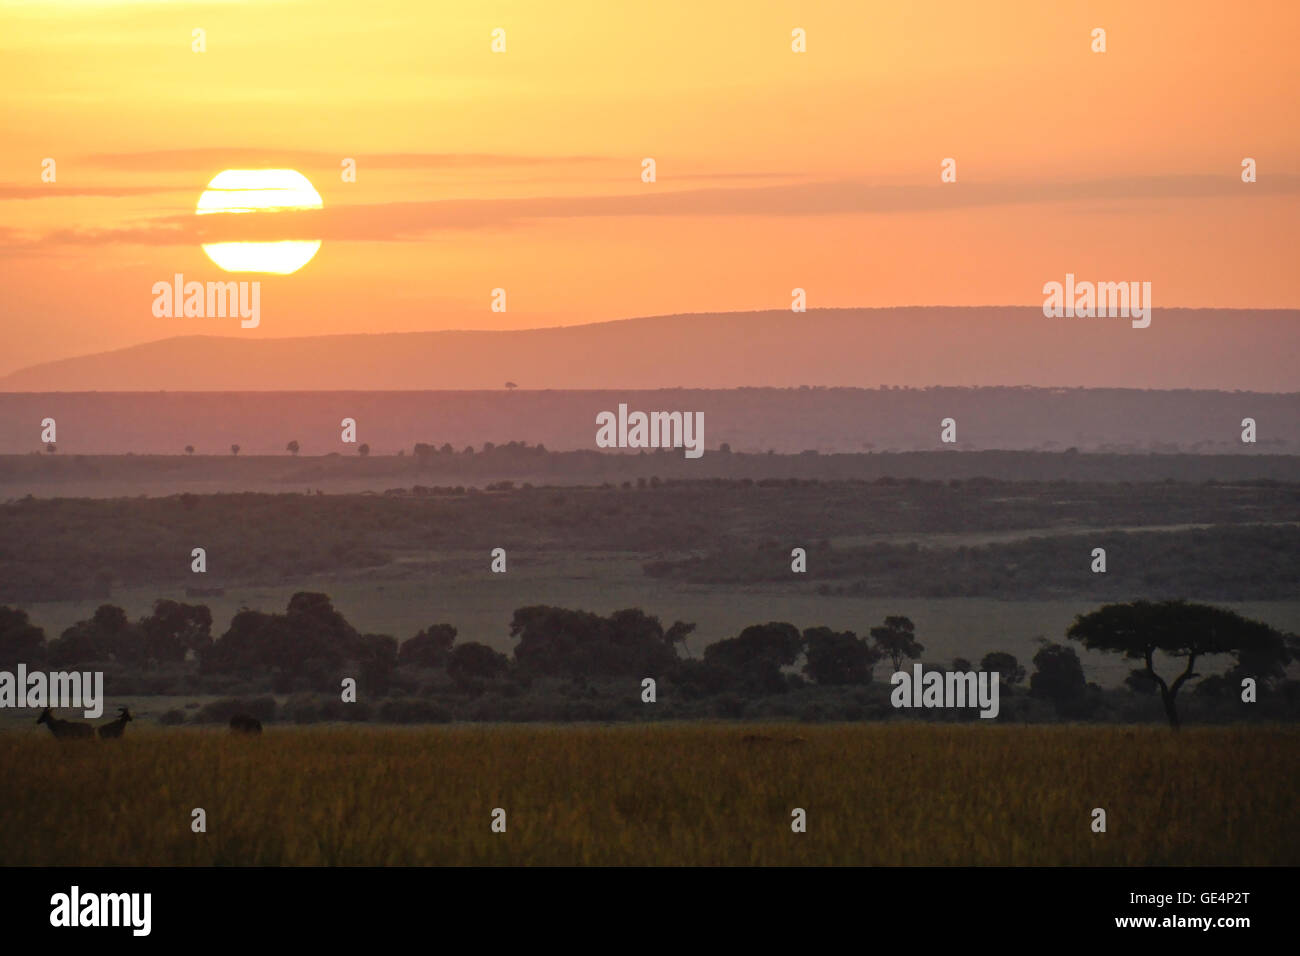 Sunrise over the Masai Mara, Kenya - Stock Image